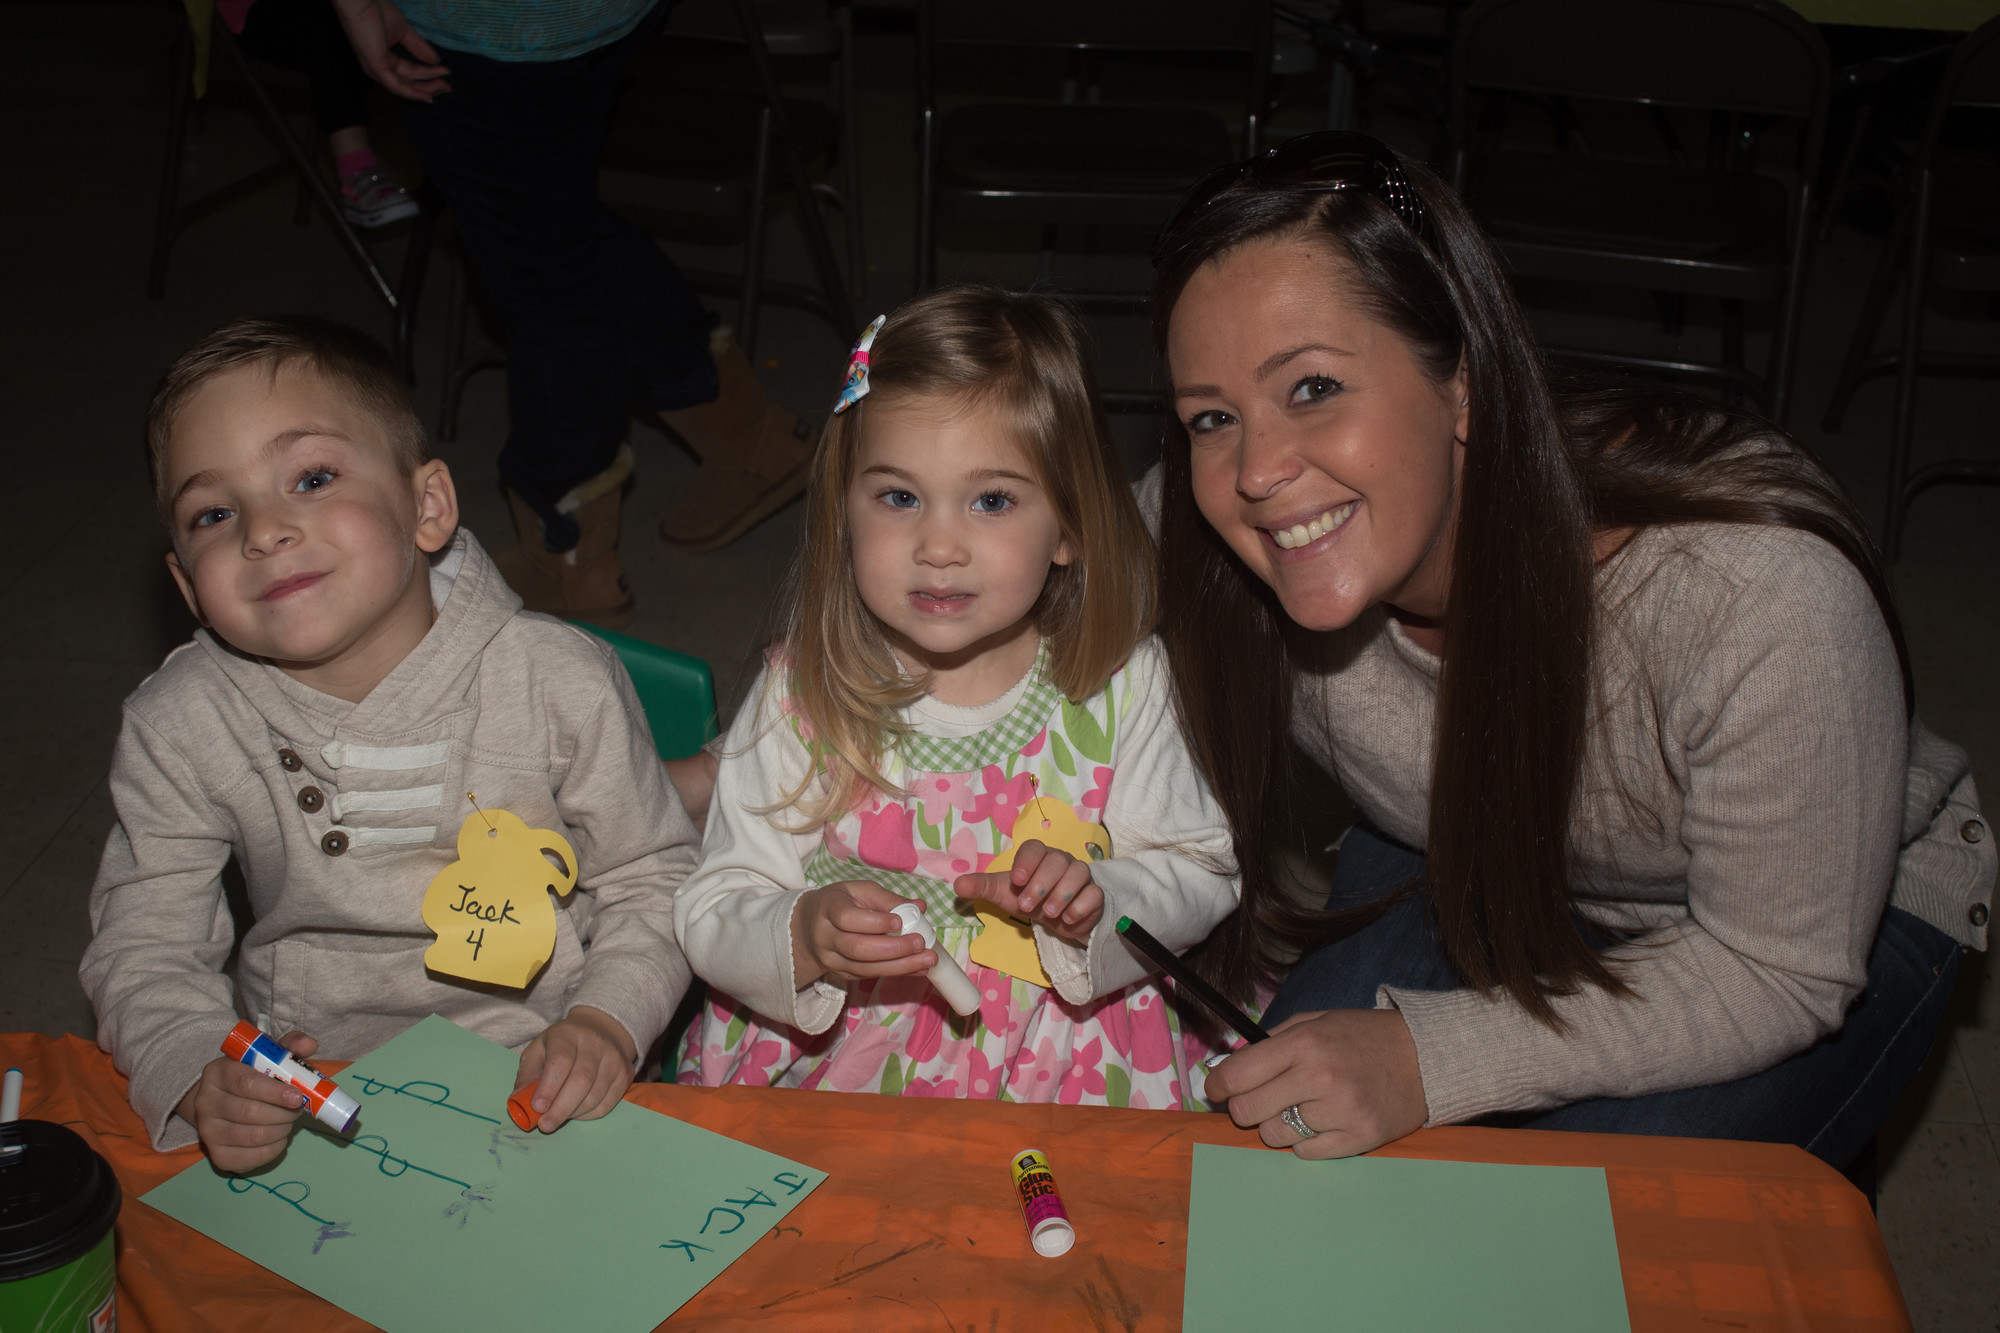 There were smiles on the faces of Jack, 4, Sarah, 3, and Patti Hotzetz.